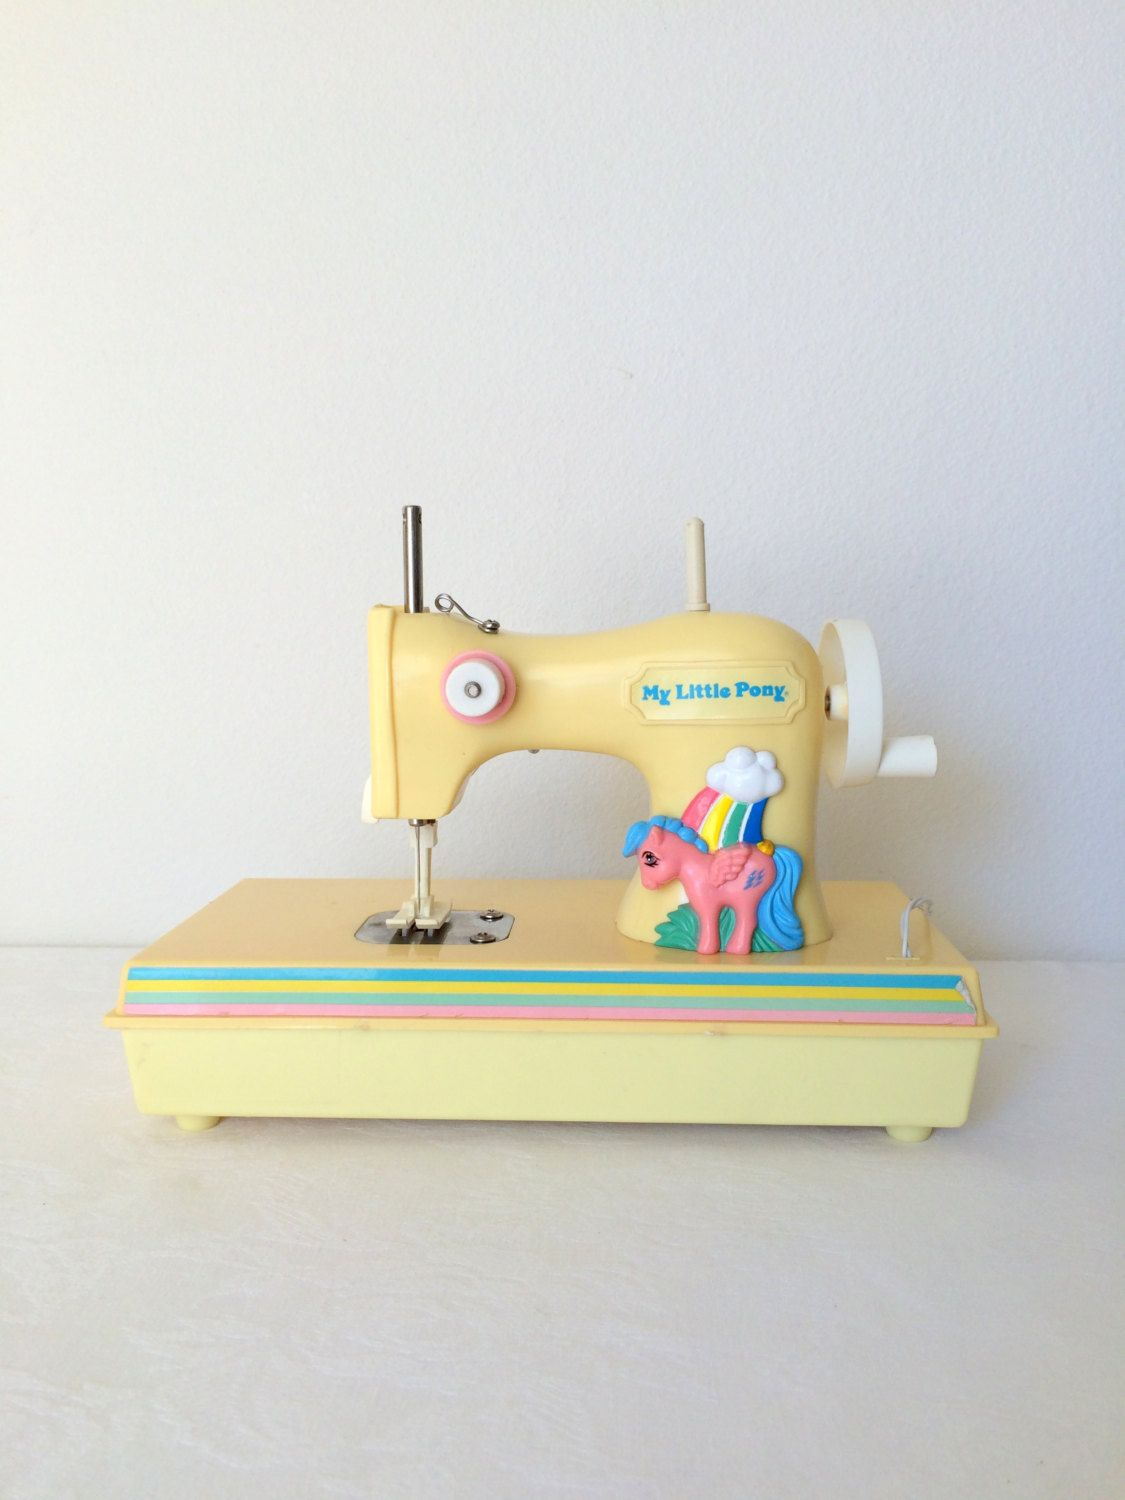 My Little Pony Vintage Firefly Sewing Machine Collectible